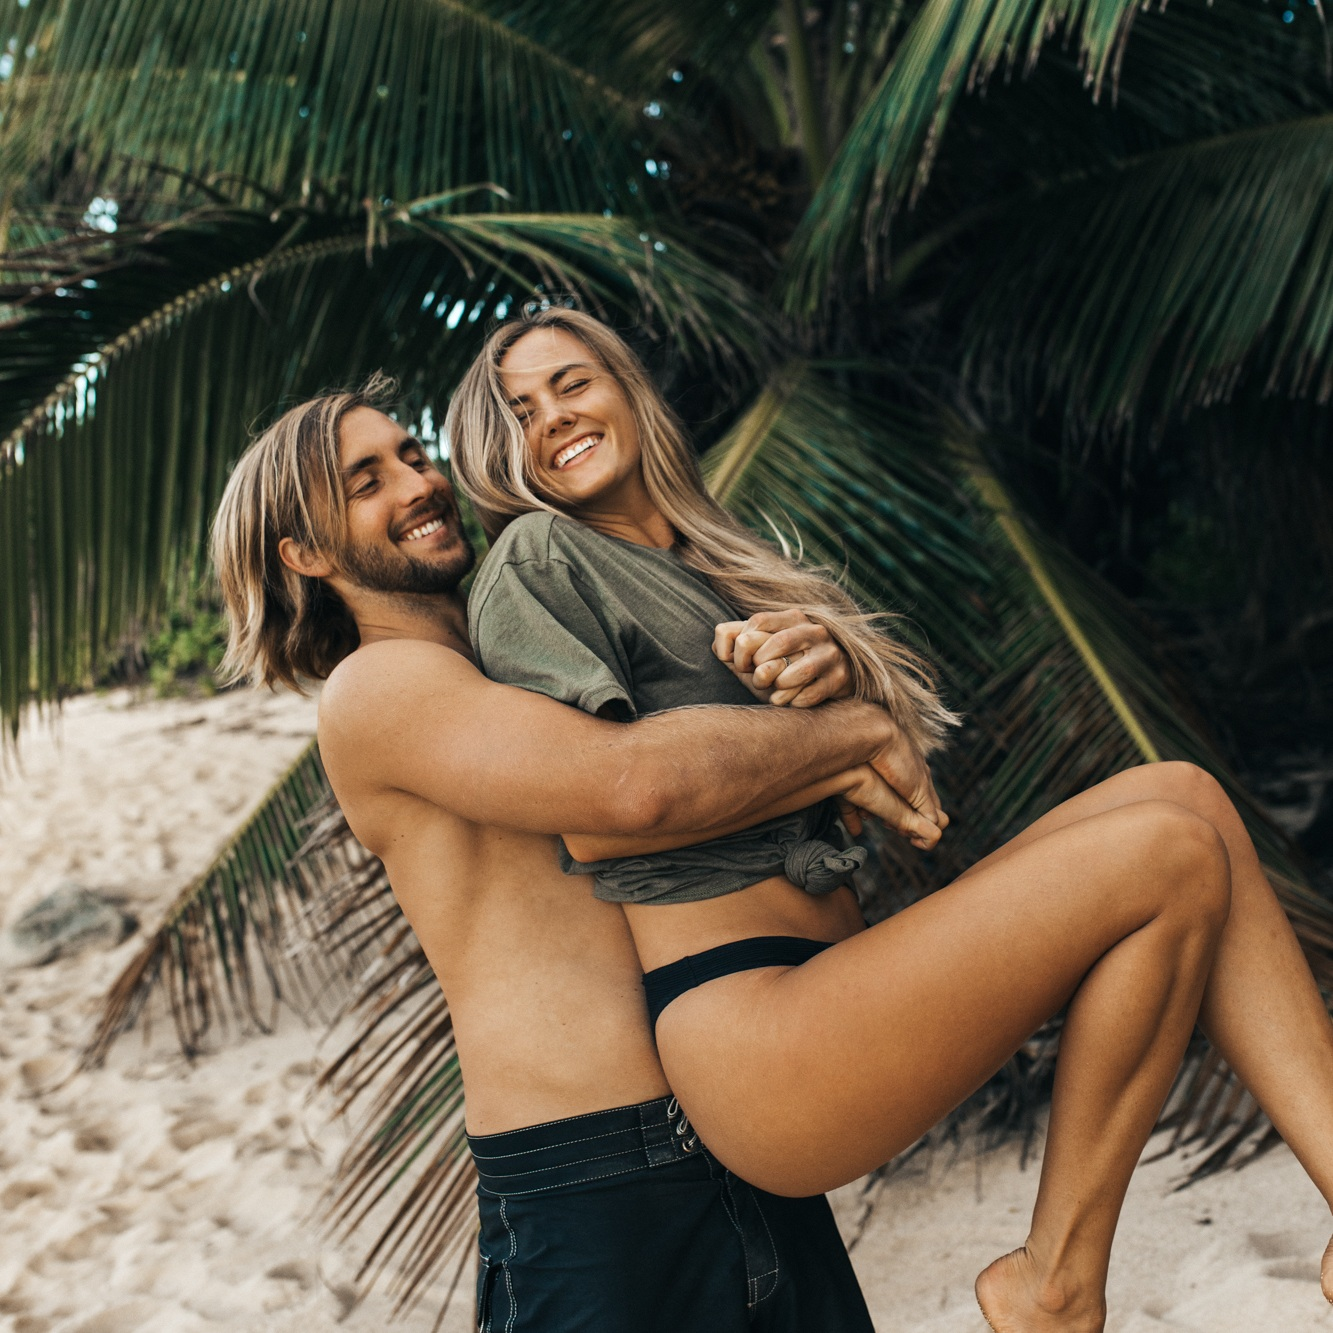 Aloha, I'm Heather! - I'm a professional beach bum living in Hawai'i with my cute husband Bryant. Together we surf, eat tacos, pet all the beach dogs, and create. We believe in following our dreams and helping other Instapreneurs do the same. Welcome to our world!Learn More